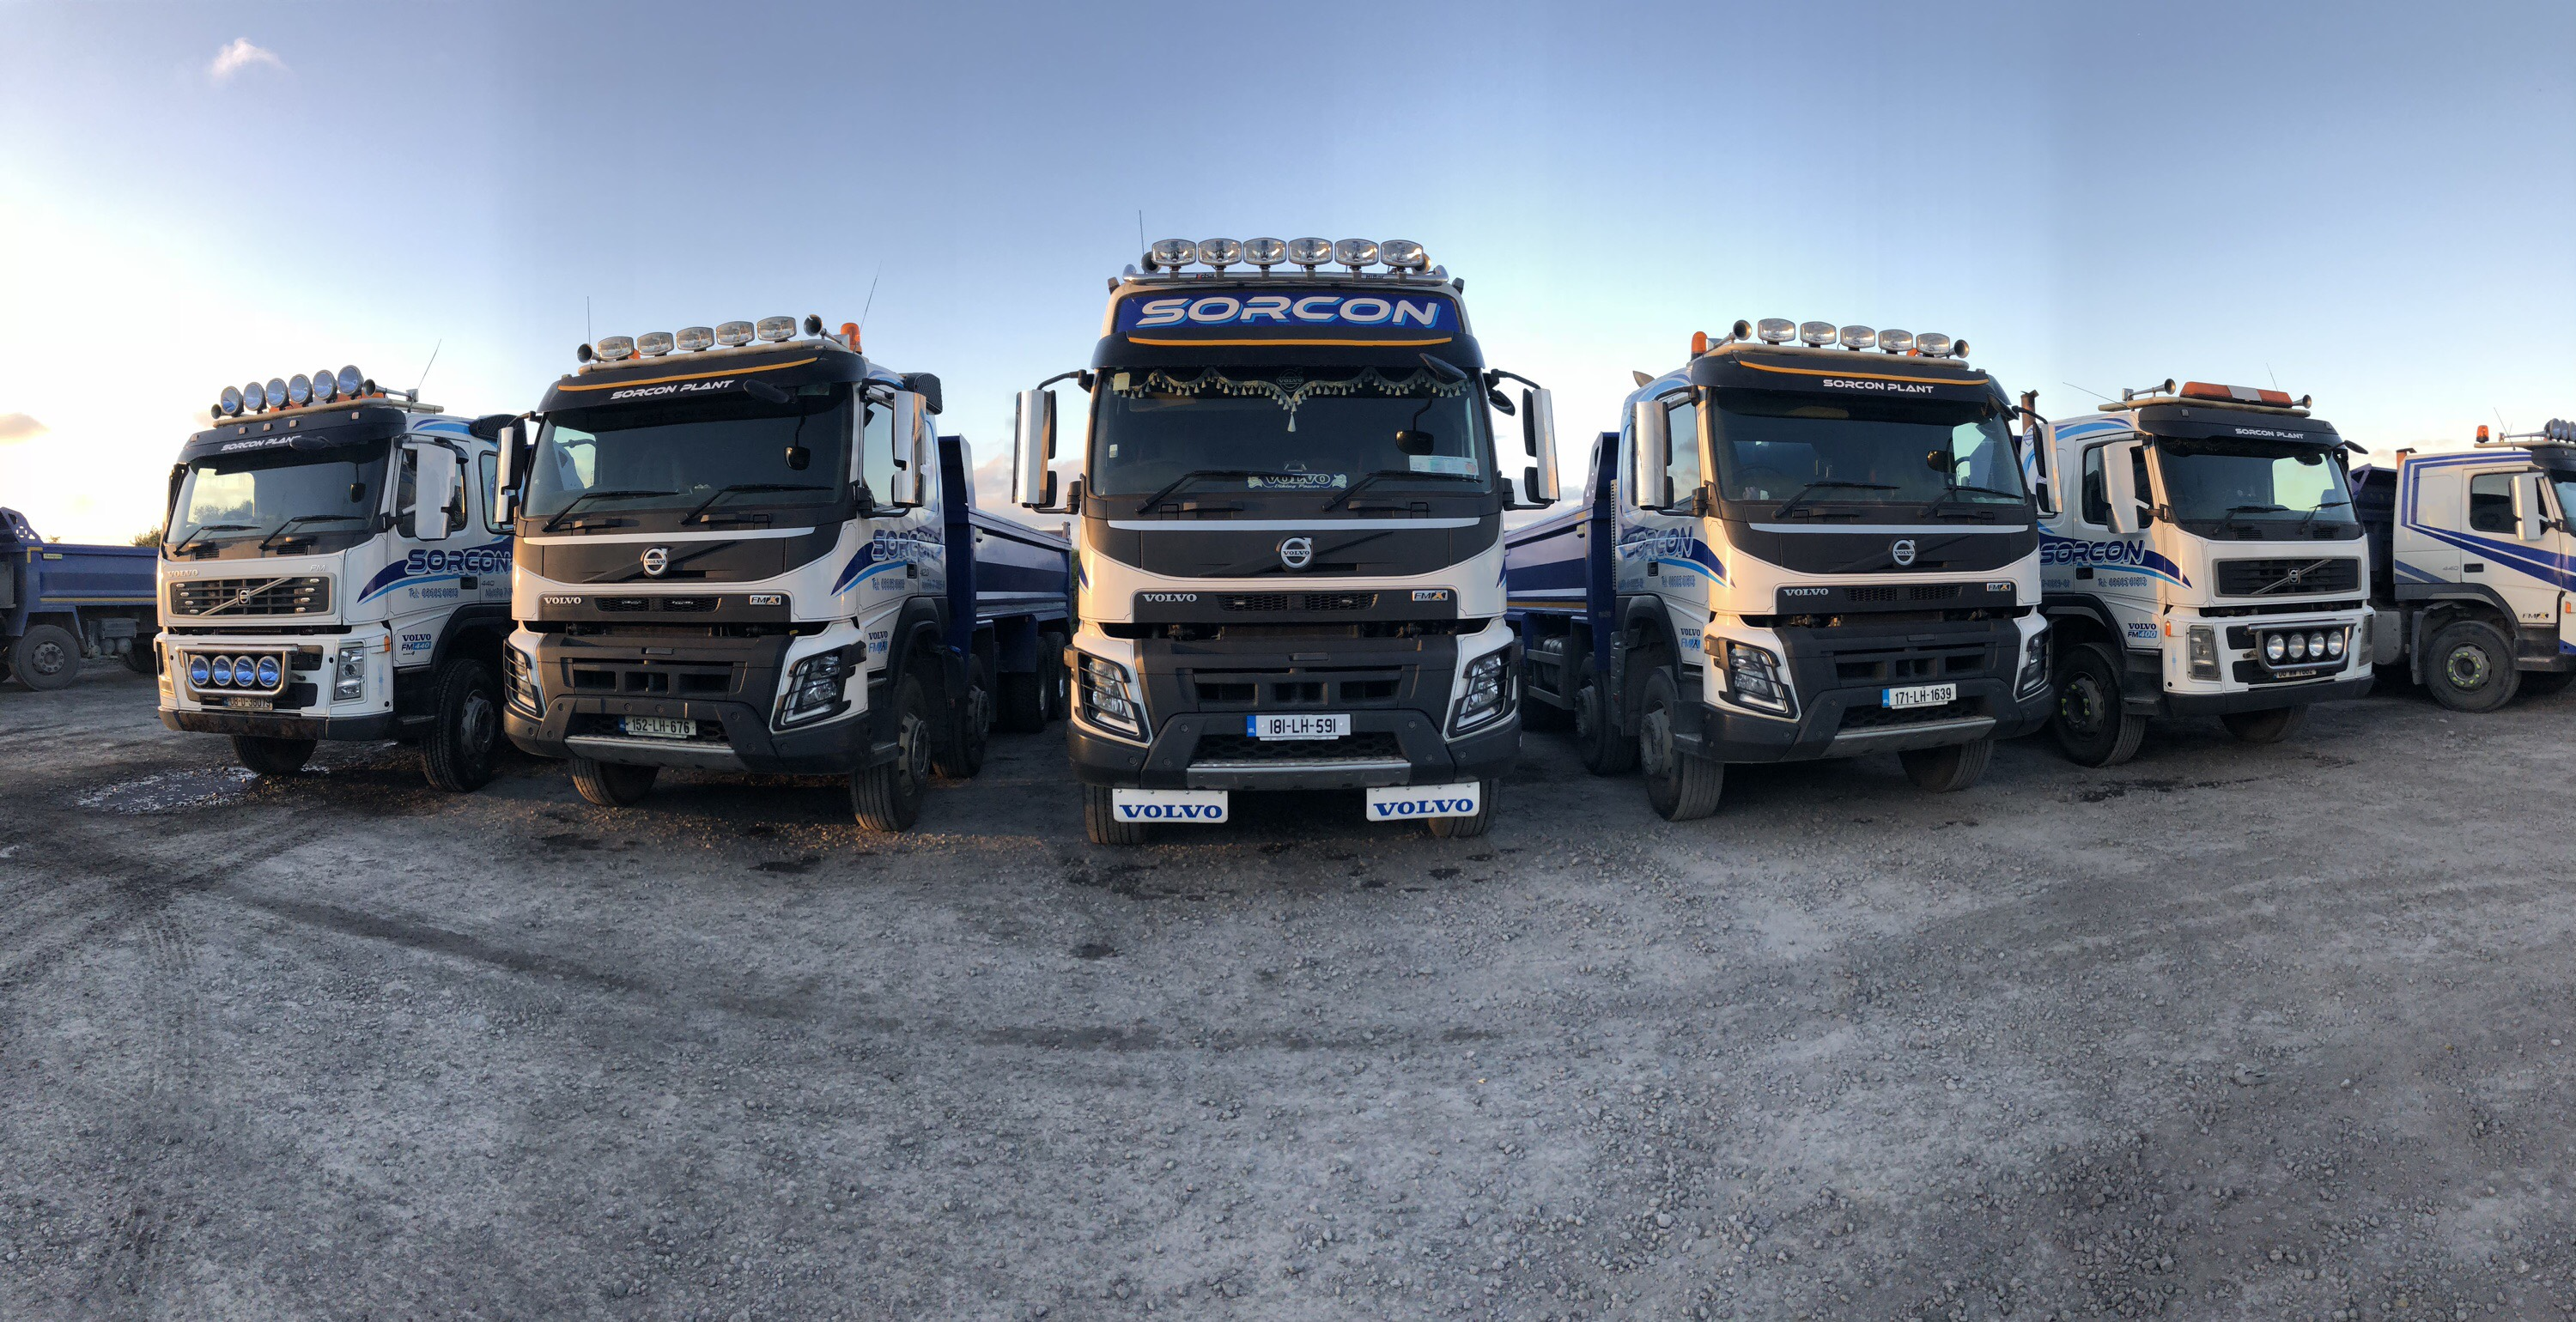 Pictures of trucks at work